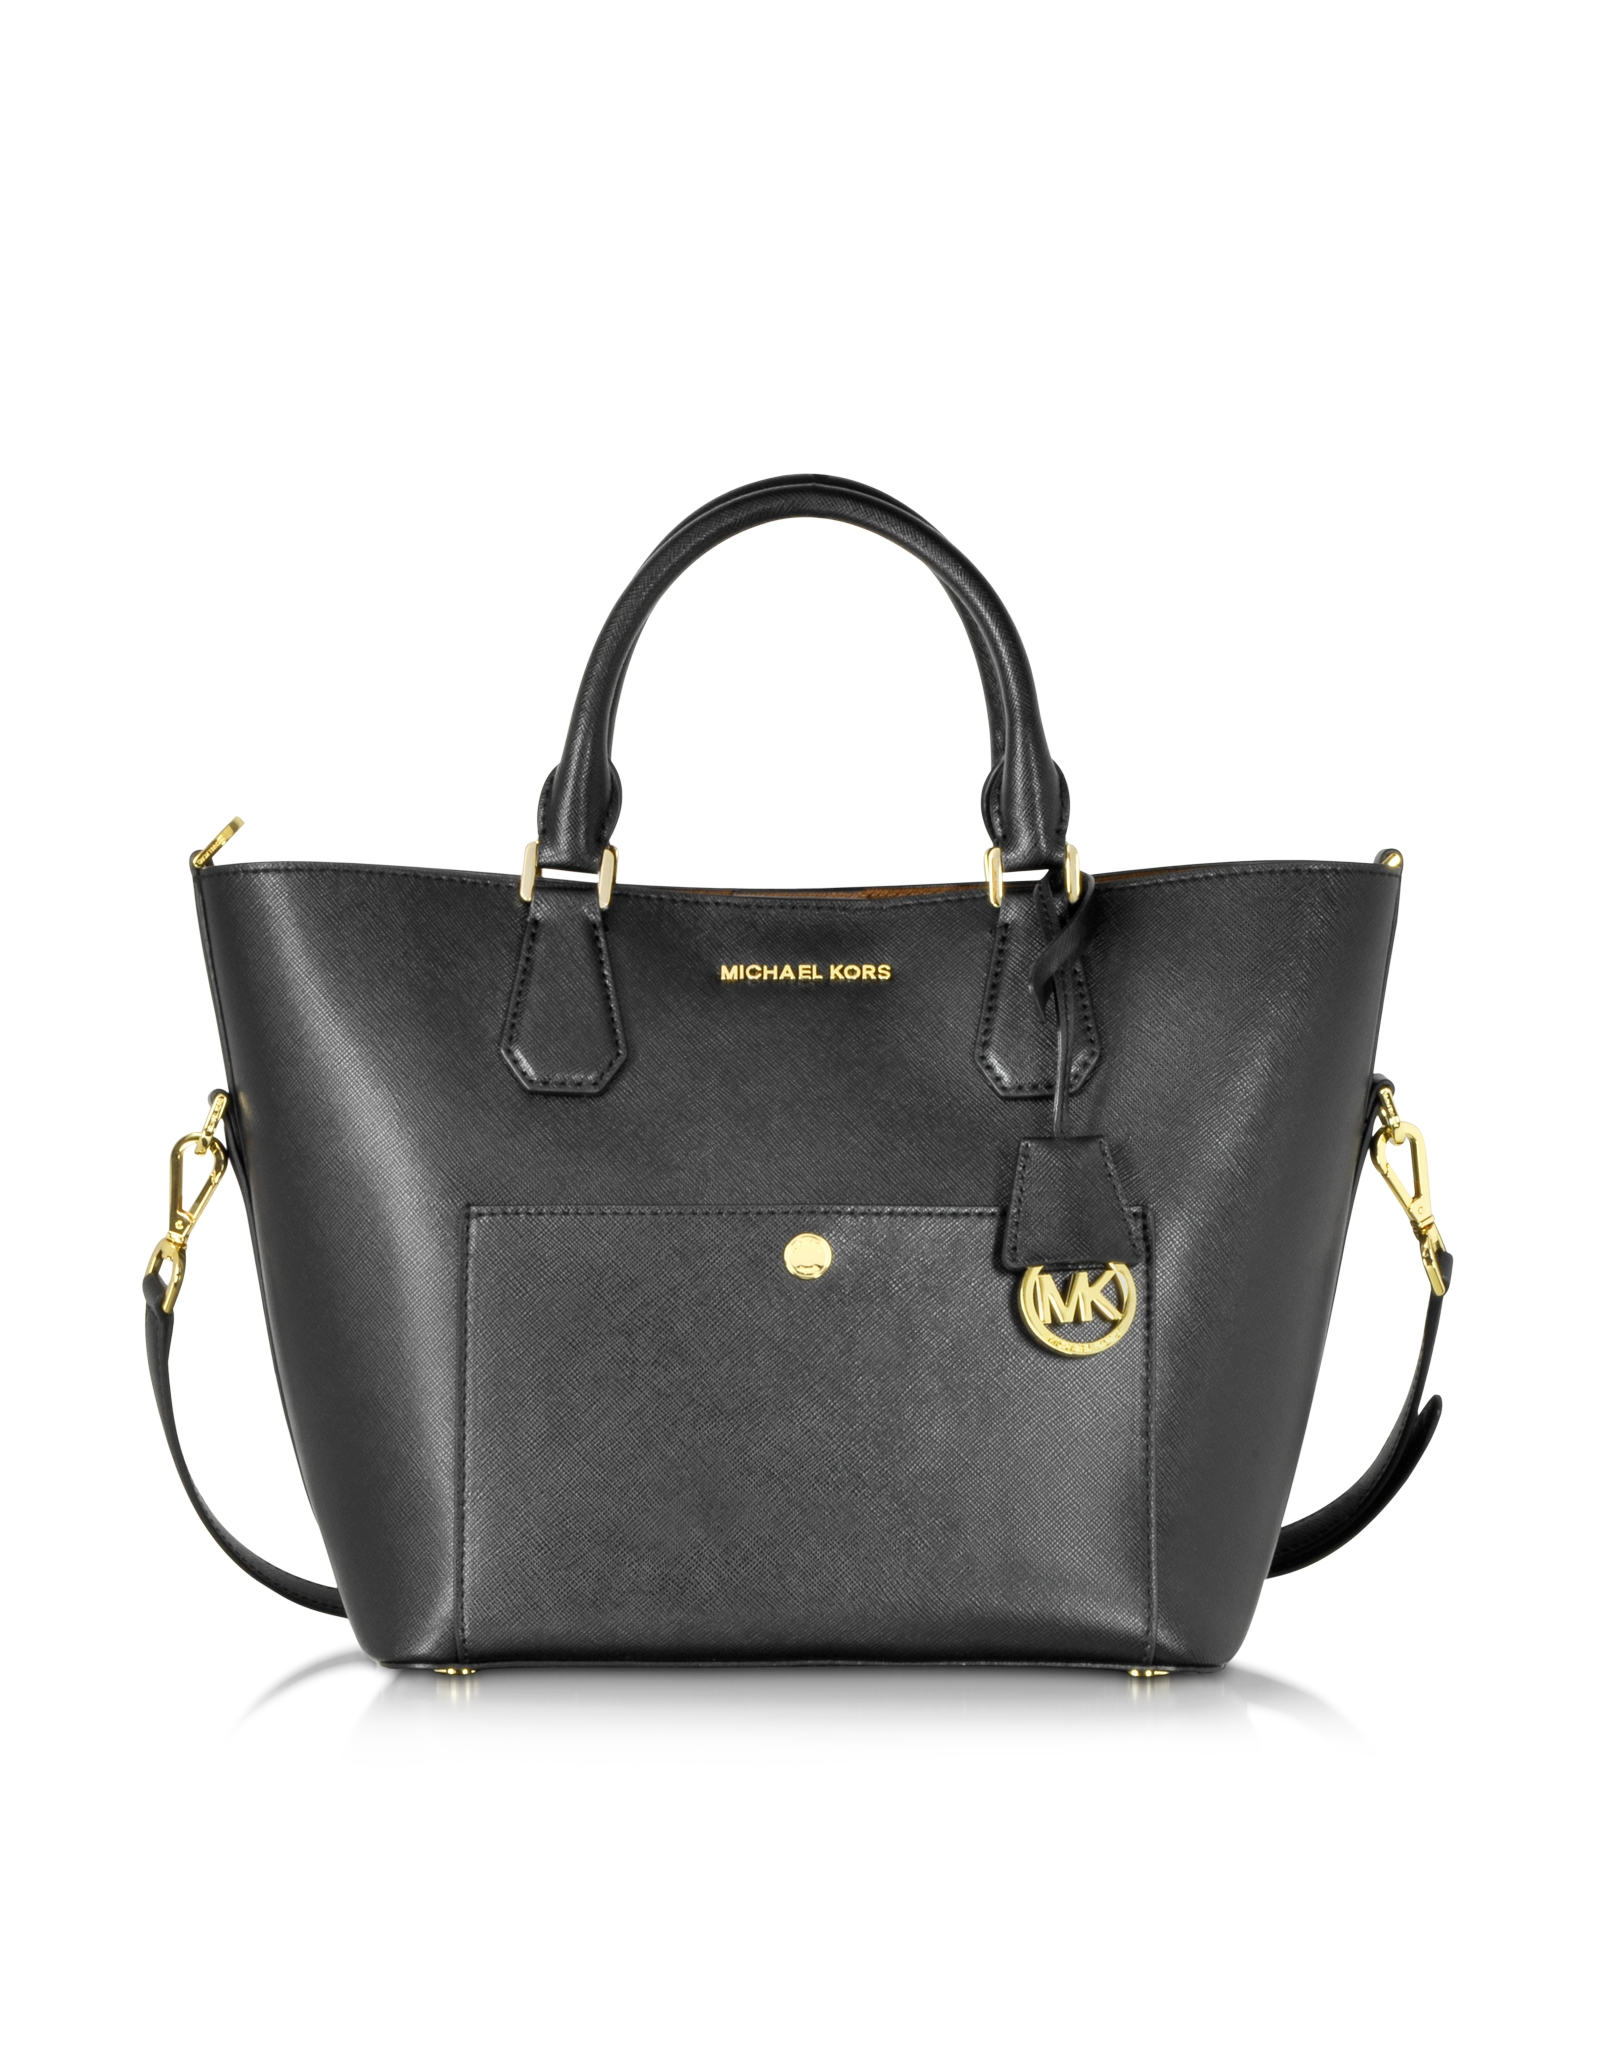 a947f6580f Lyst - Michael Kors Greenwich Large Saffiano Leather Satchel in Black